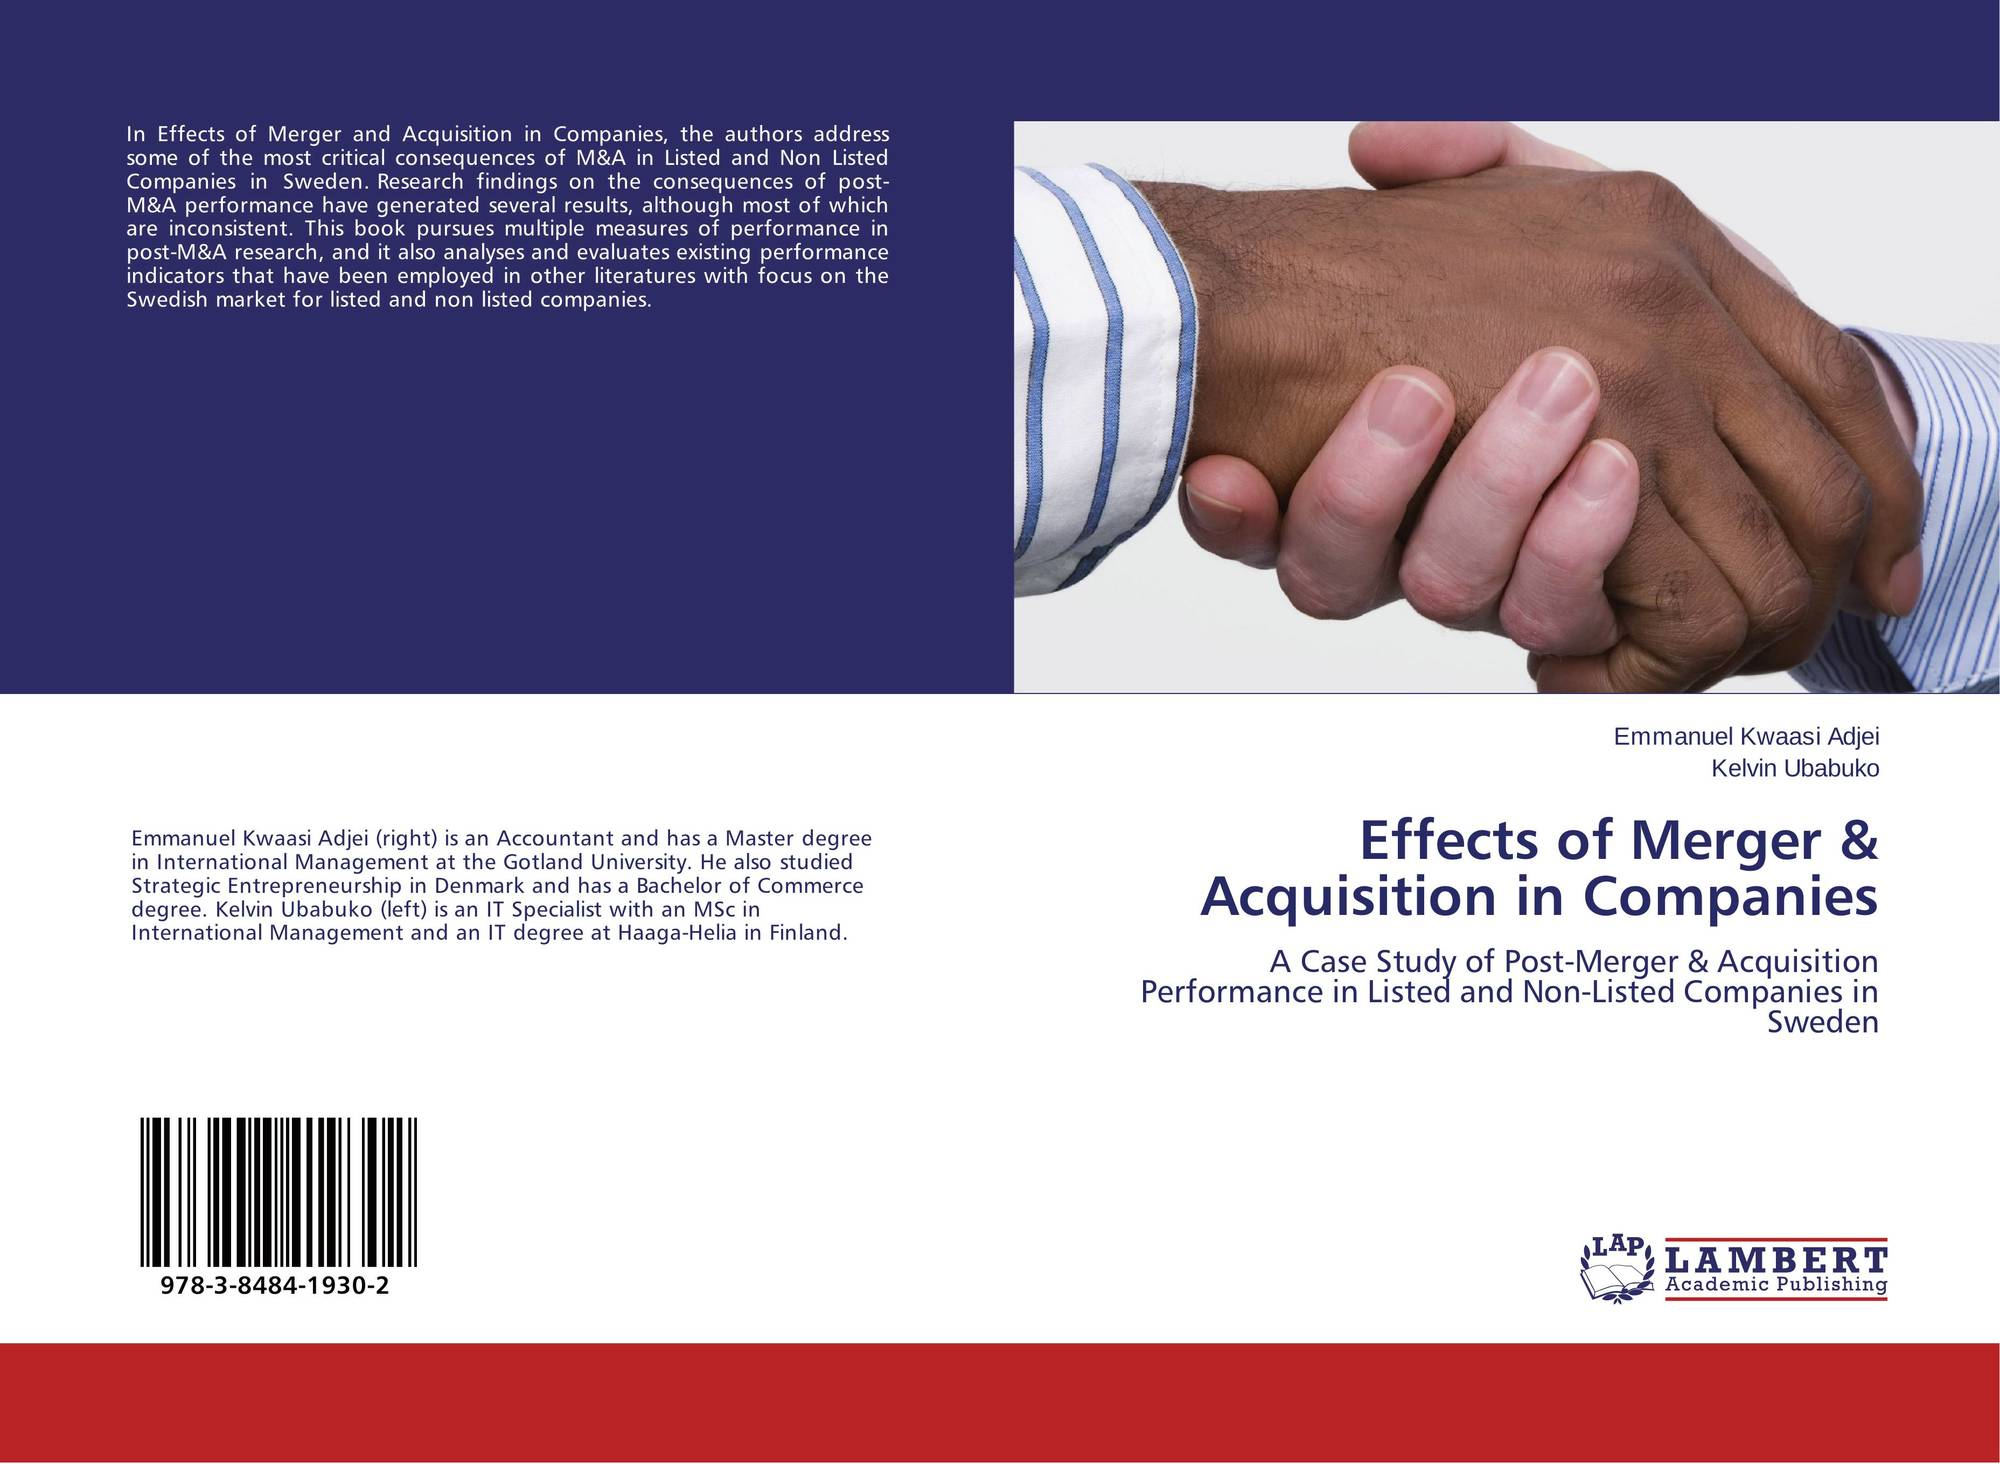 mergers and acquisitions in indan industry Page | 111 eurasian journal of business and economics 2010, 3 (5), 111-126 mergers, acquisitions and firms' performance: experience of indian pharmaceutical industry.